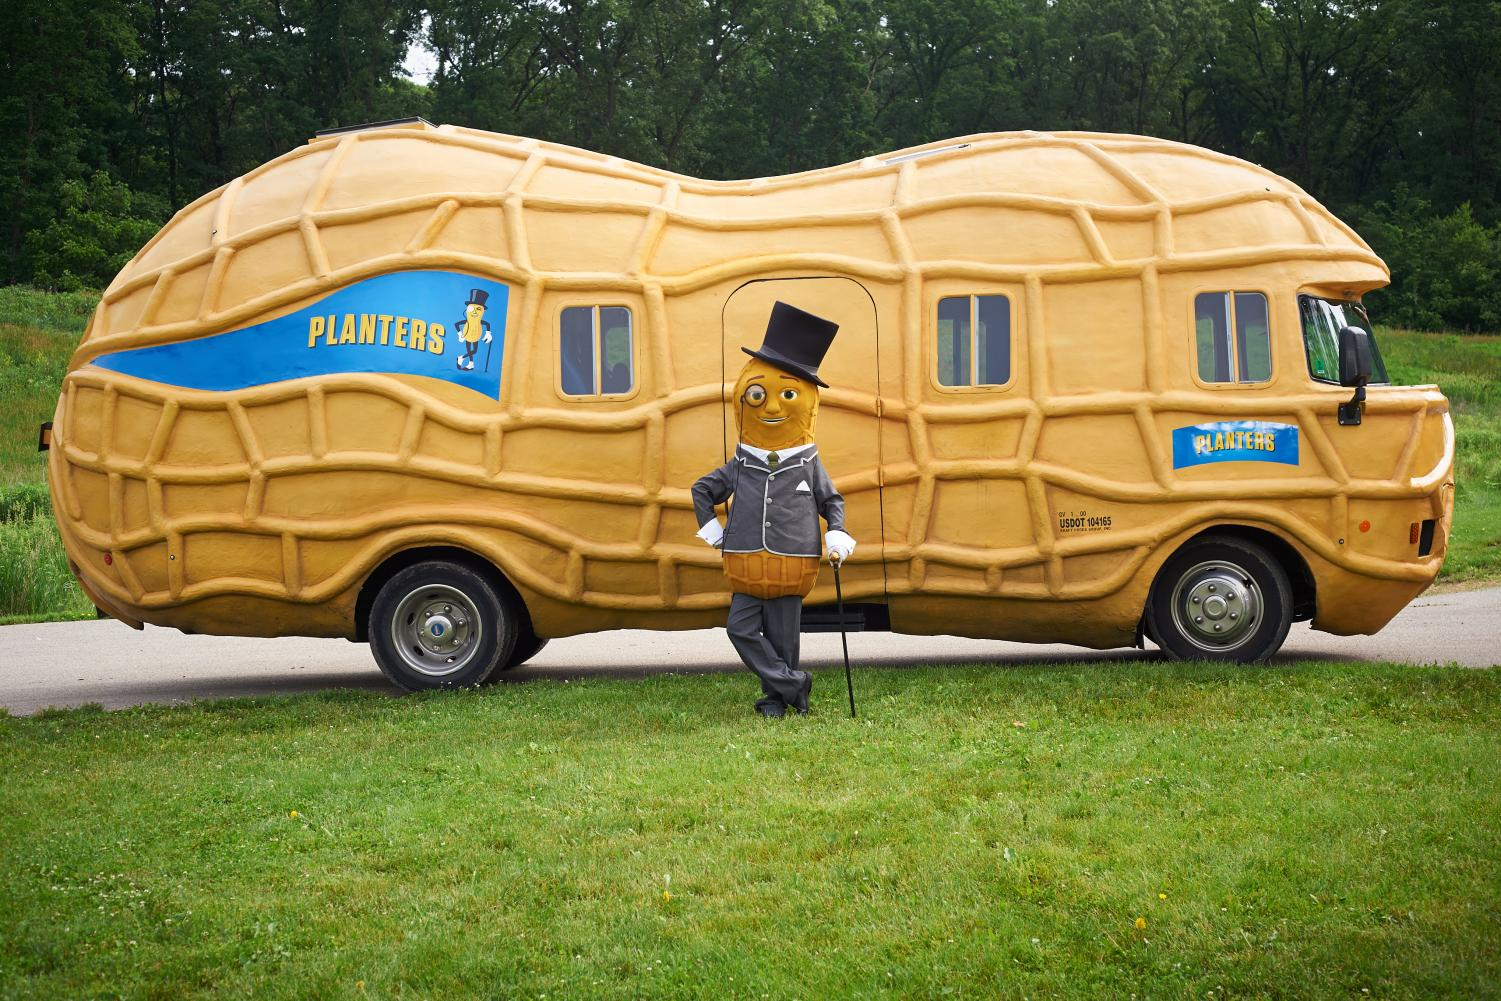 The Planters Peanutters, advertising specialists who work for the company, travel the nation visiting various cities in this peanut-shaped truck, often joined by the brand's mascot, Mr. Peanut. University alumnus Bradley Smith travels with Mr. Peanut across the country to advertise the company.